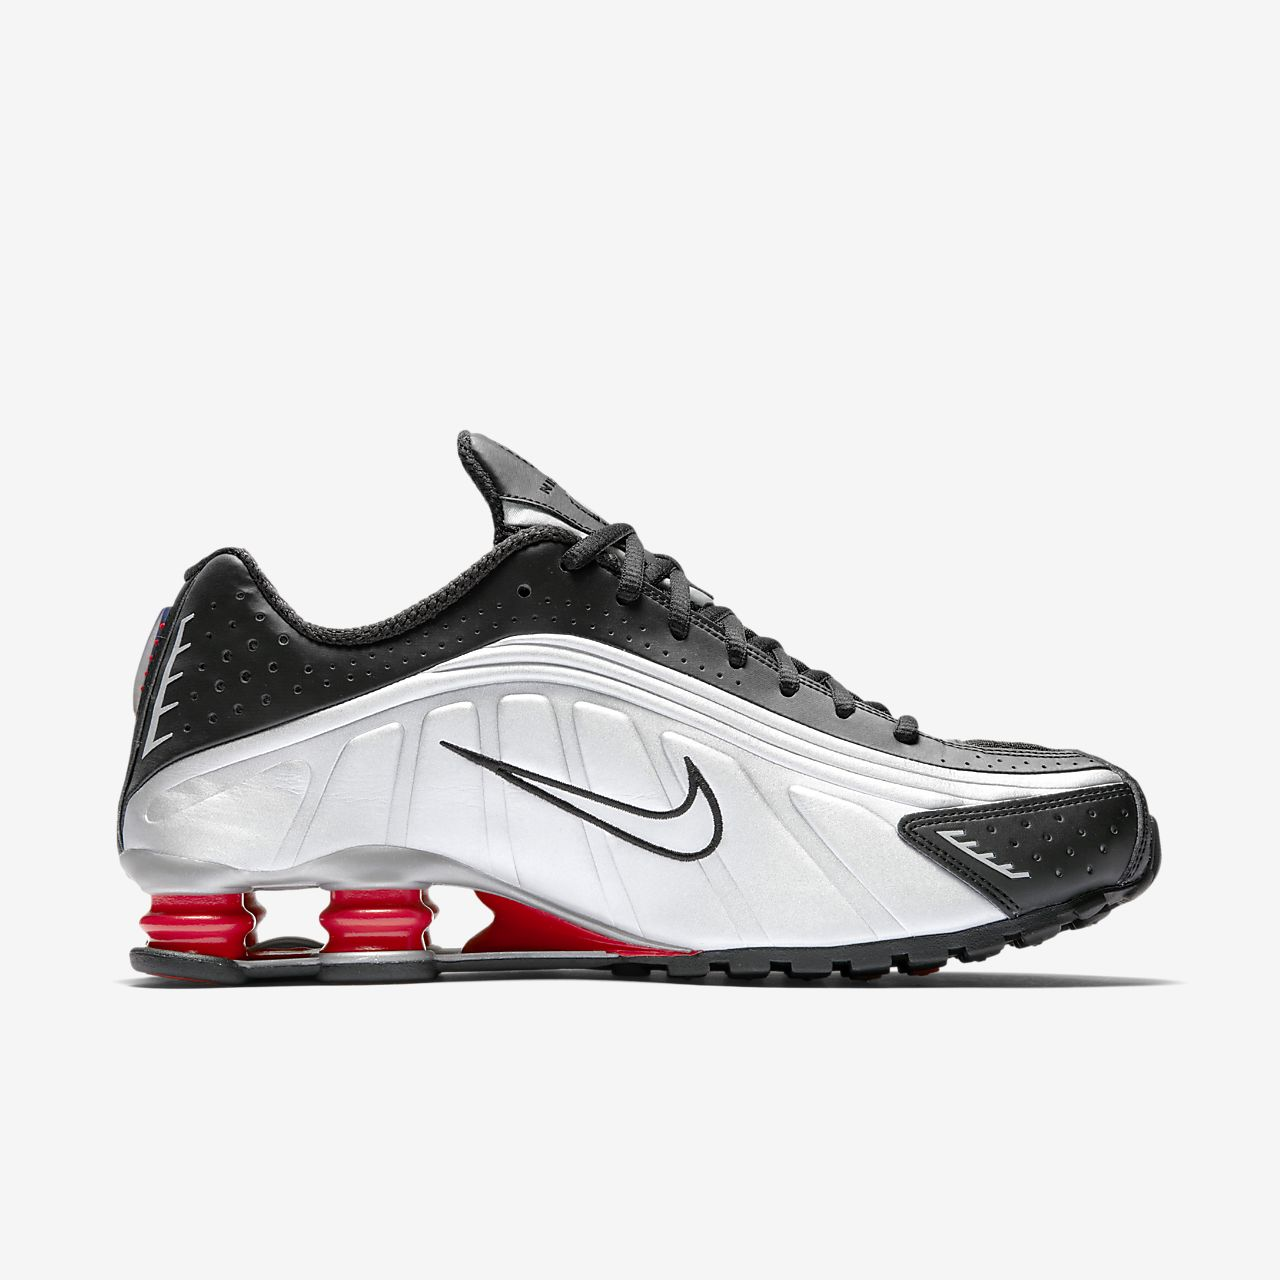 Nike Shox R4 : Real Nike Running Shoes, Nike Running Shoes